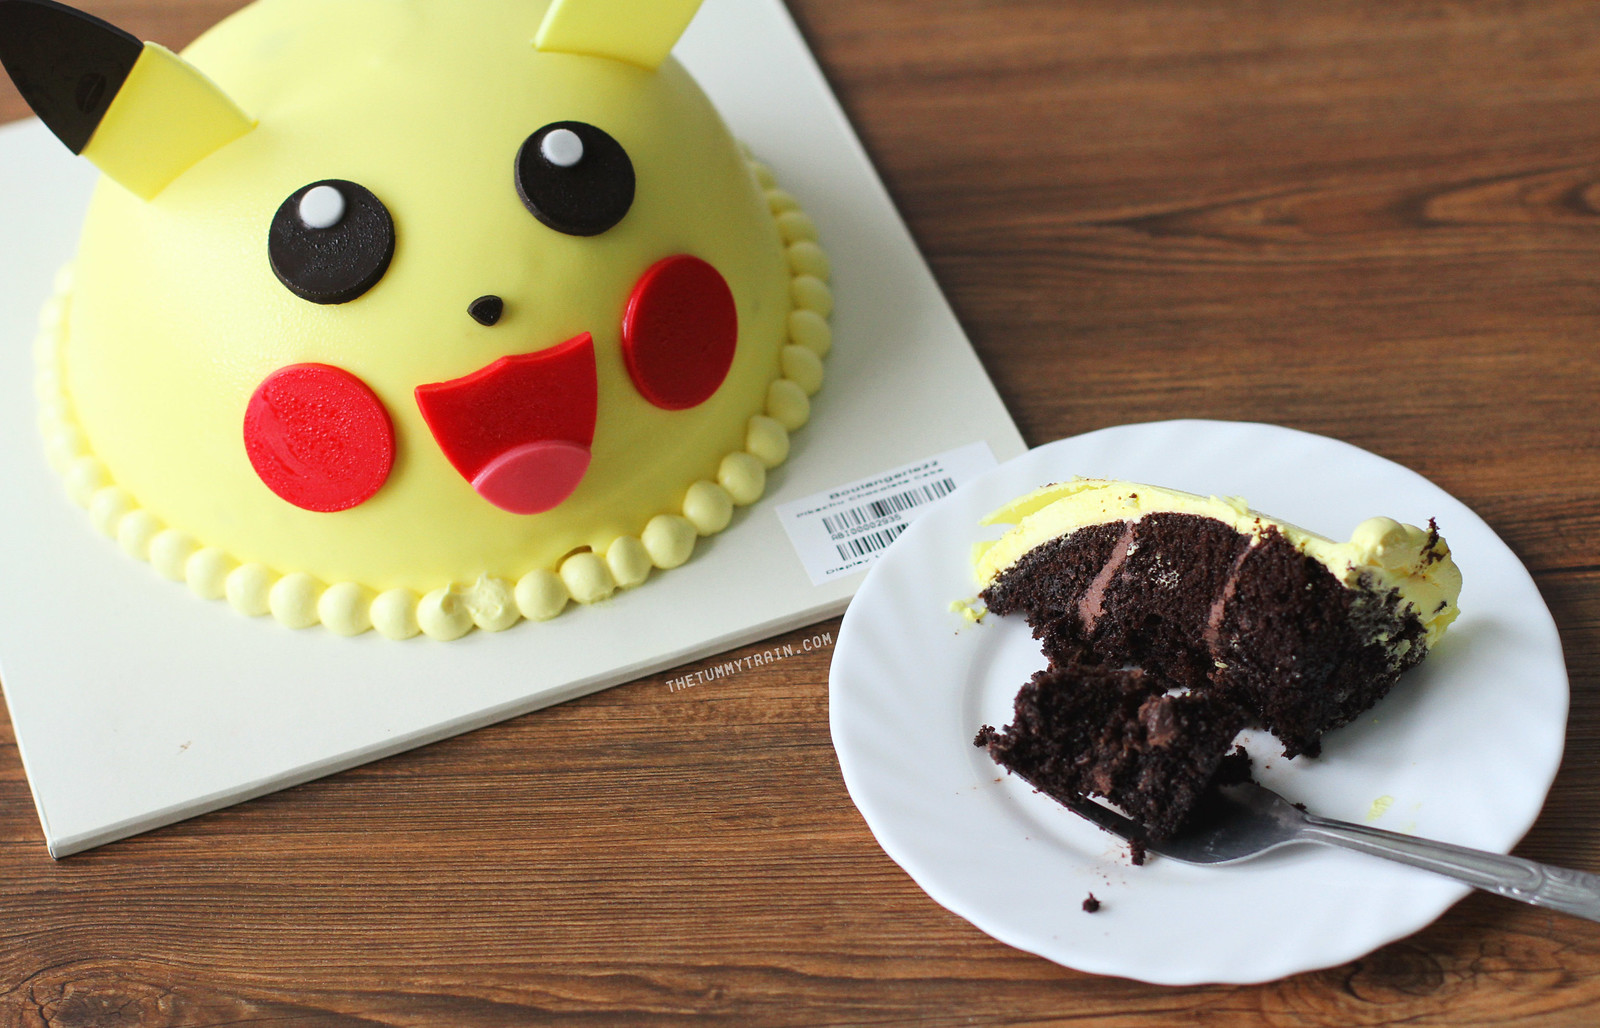 33149834822 80d89f1d10 h - Fuel your Pokemon Go craze with Boulangerie22 Pokemon Cakes